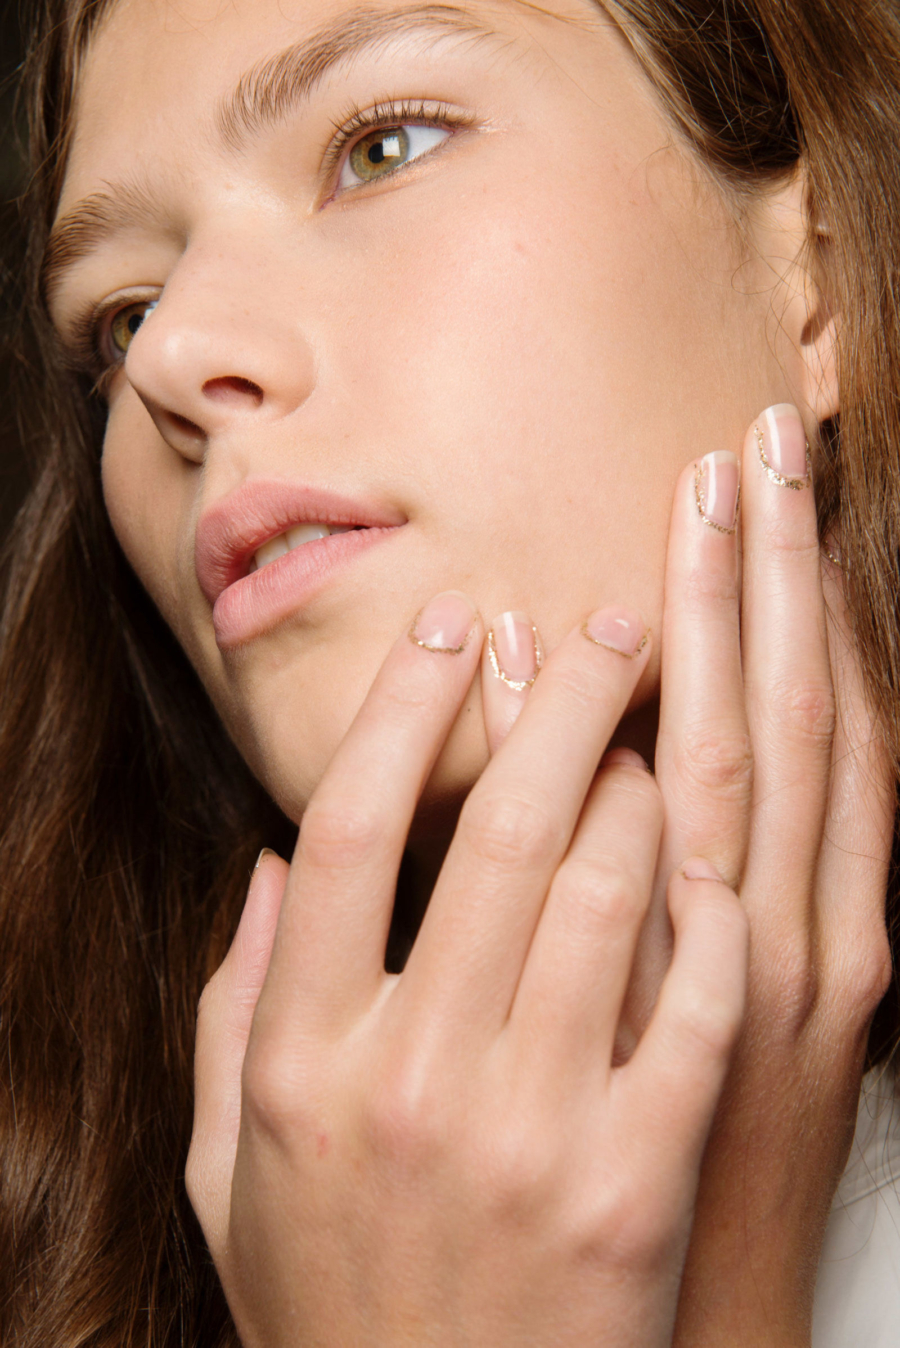 Sparking Cuticles - 5 Fashion Forward Nail Trends For Spring You Need To See // Notjessfashion.com